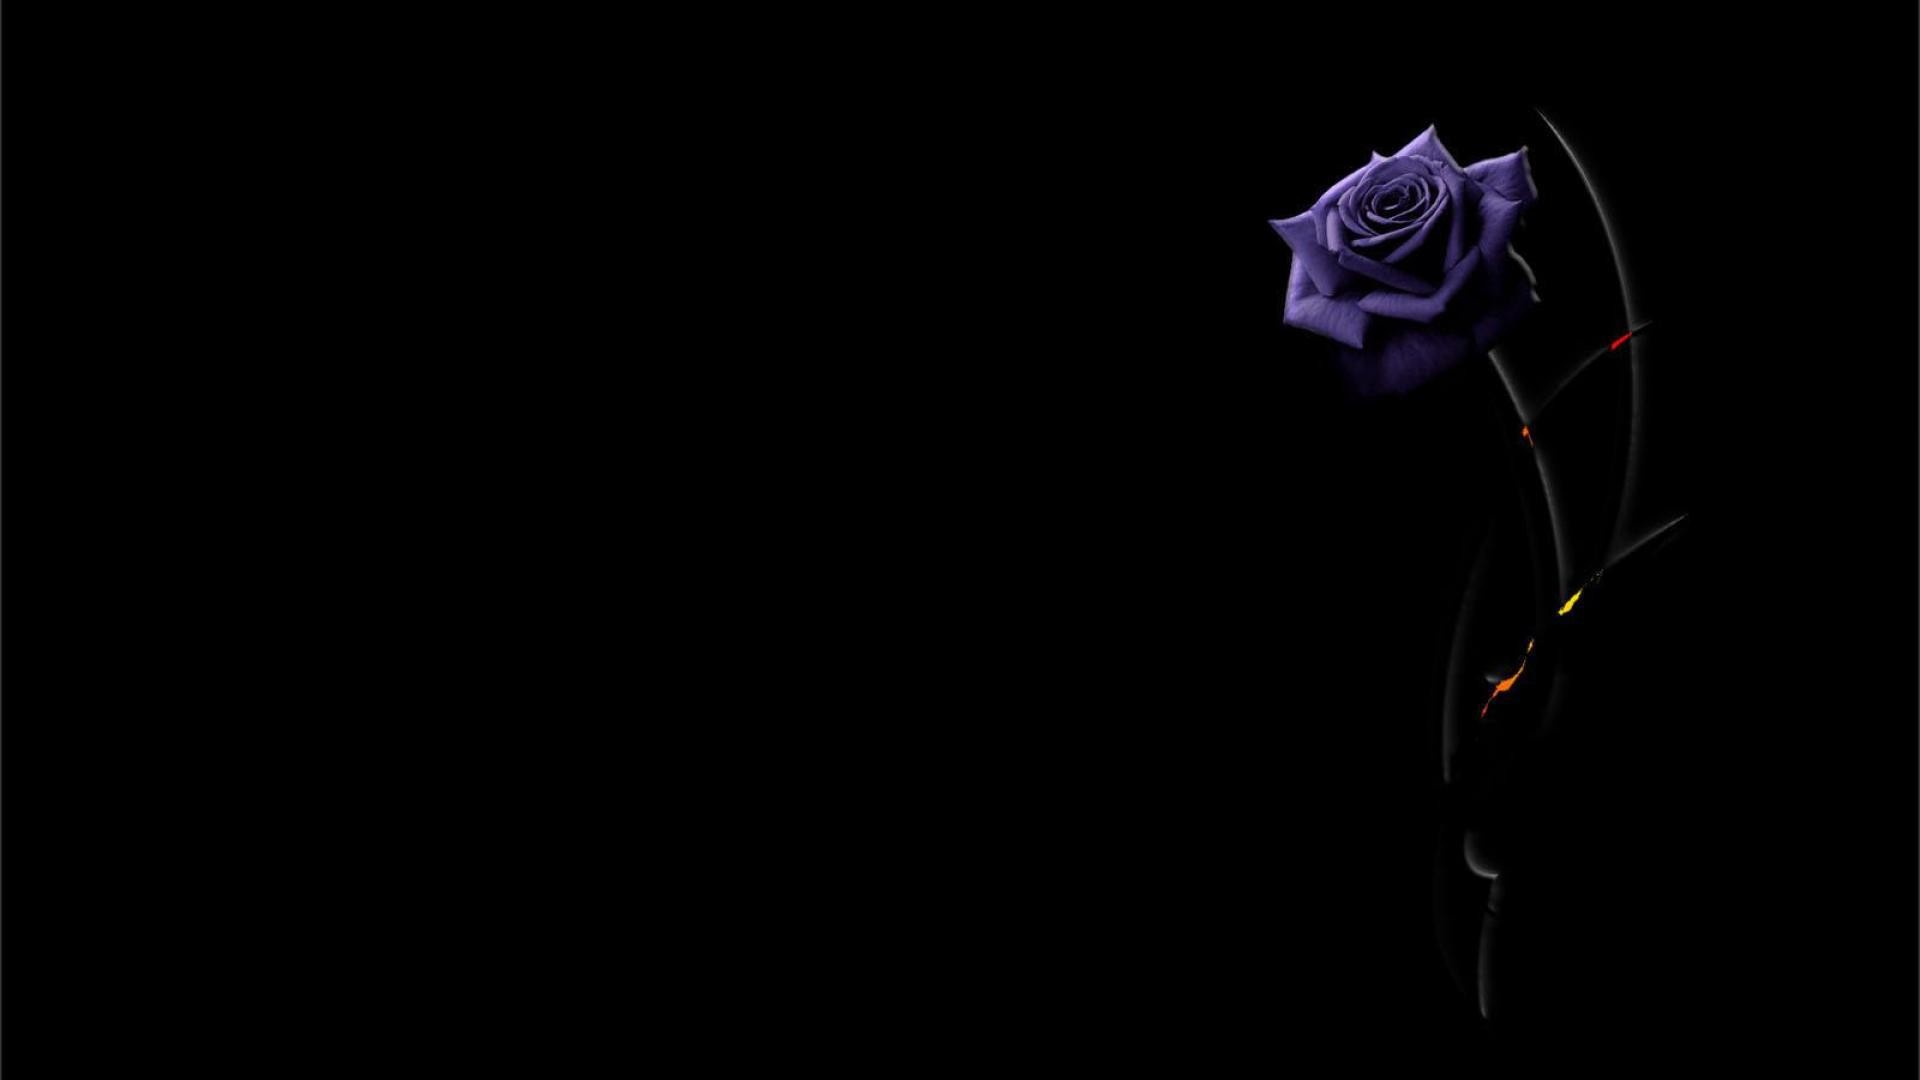 1920x1080 Beautiful purple rose on a black background